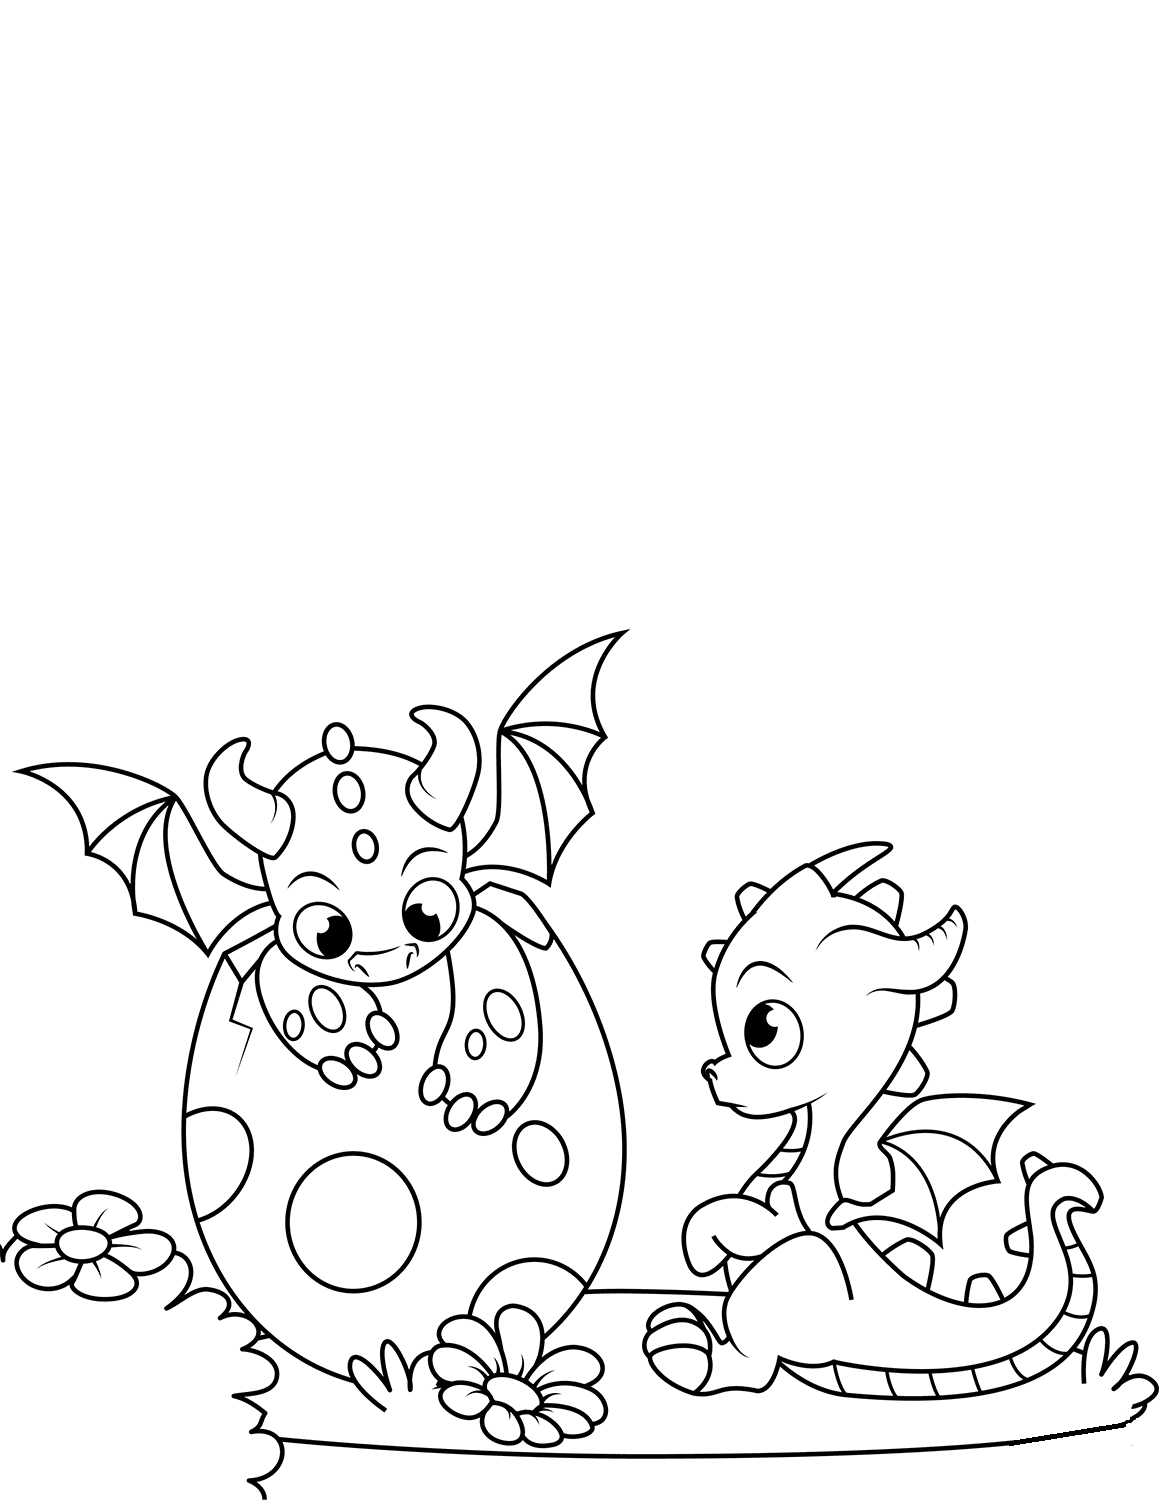 Baby Dragon Coloring Sheets